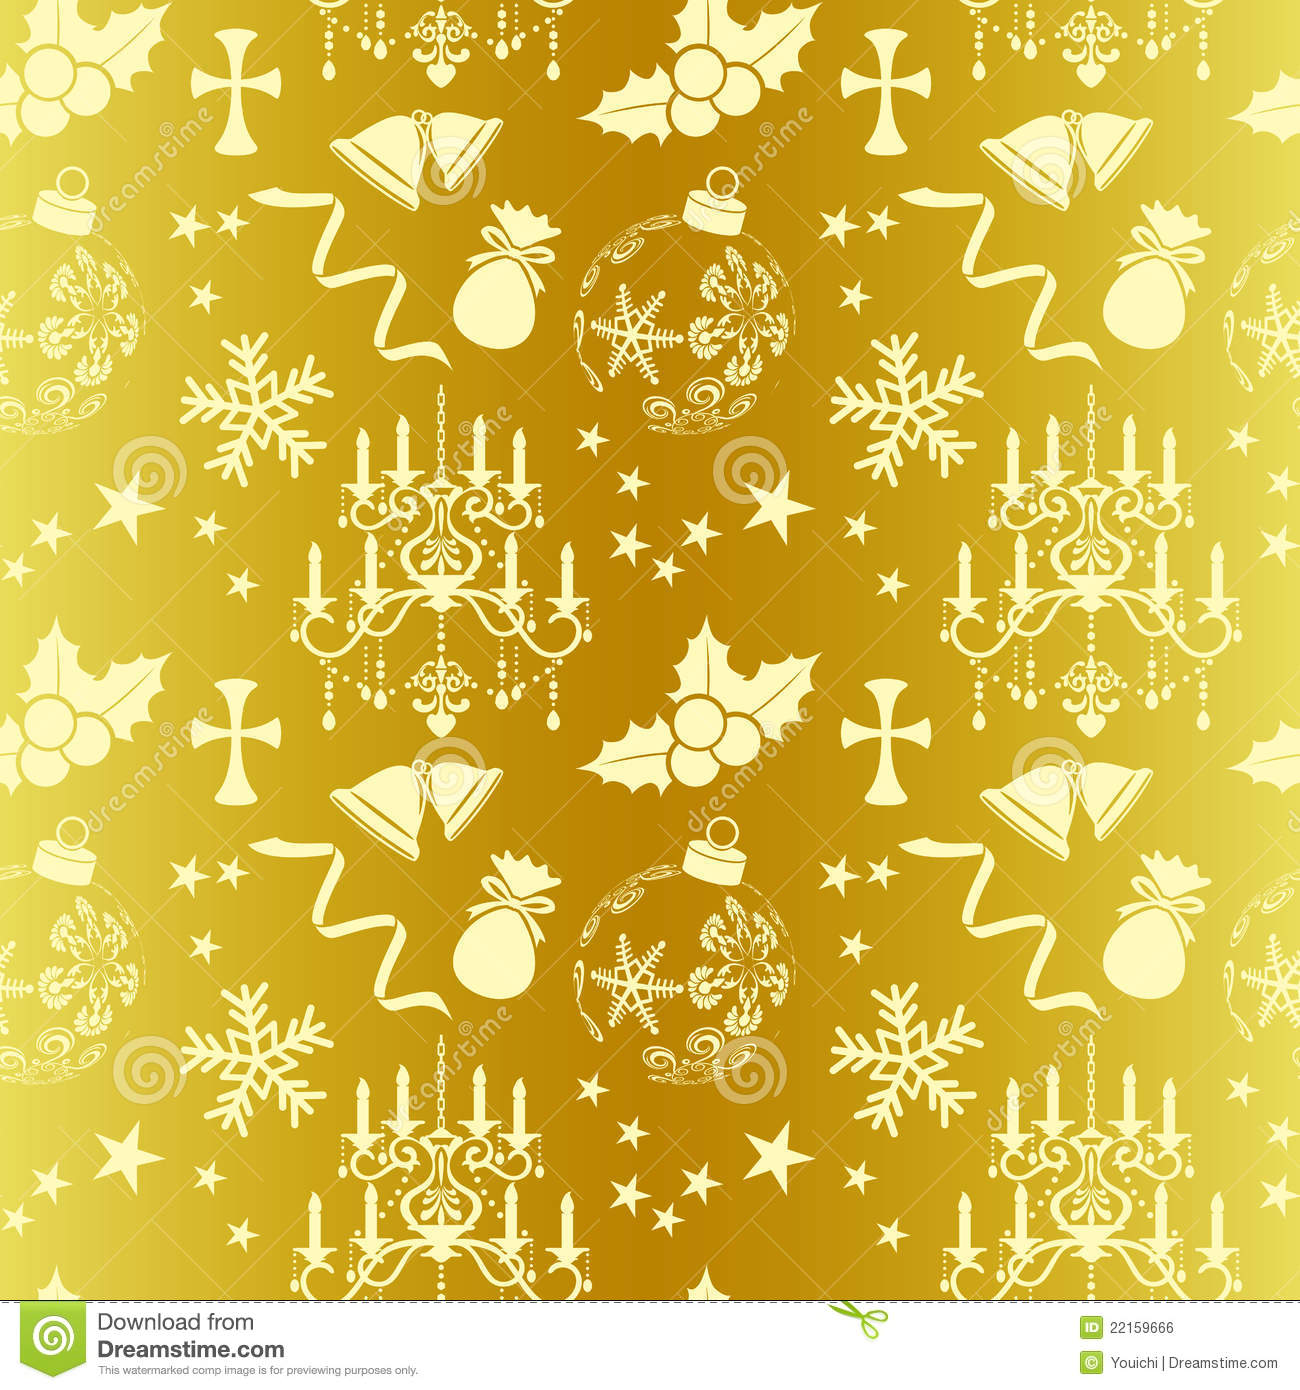 Cute Patterns For Wallpaper Seamless Gold Christmas Pattern Royalty Free Stock Image